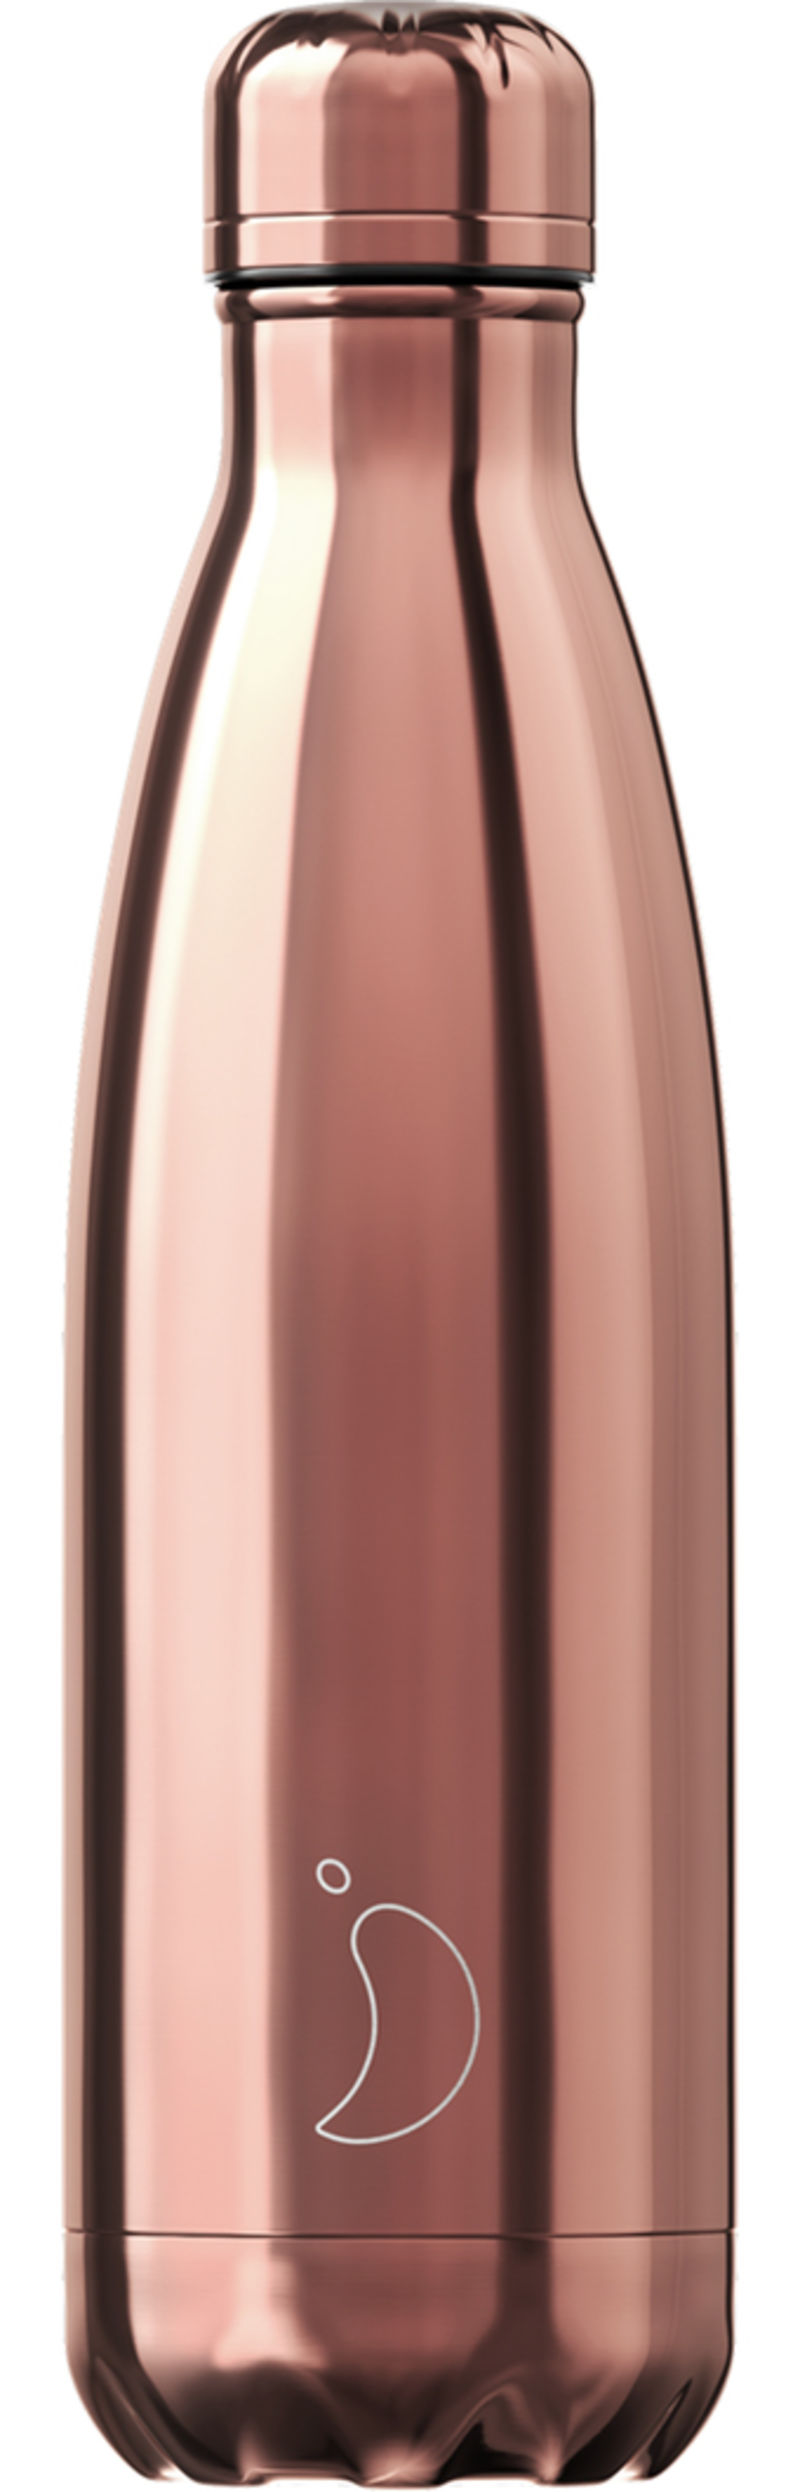 BOTELLA INOX TROPICAL ORO ROSA 500ML